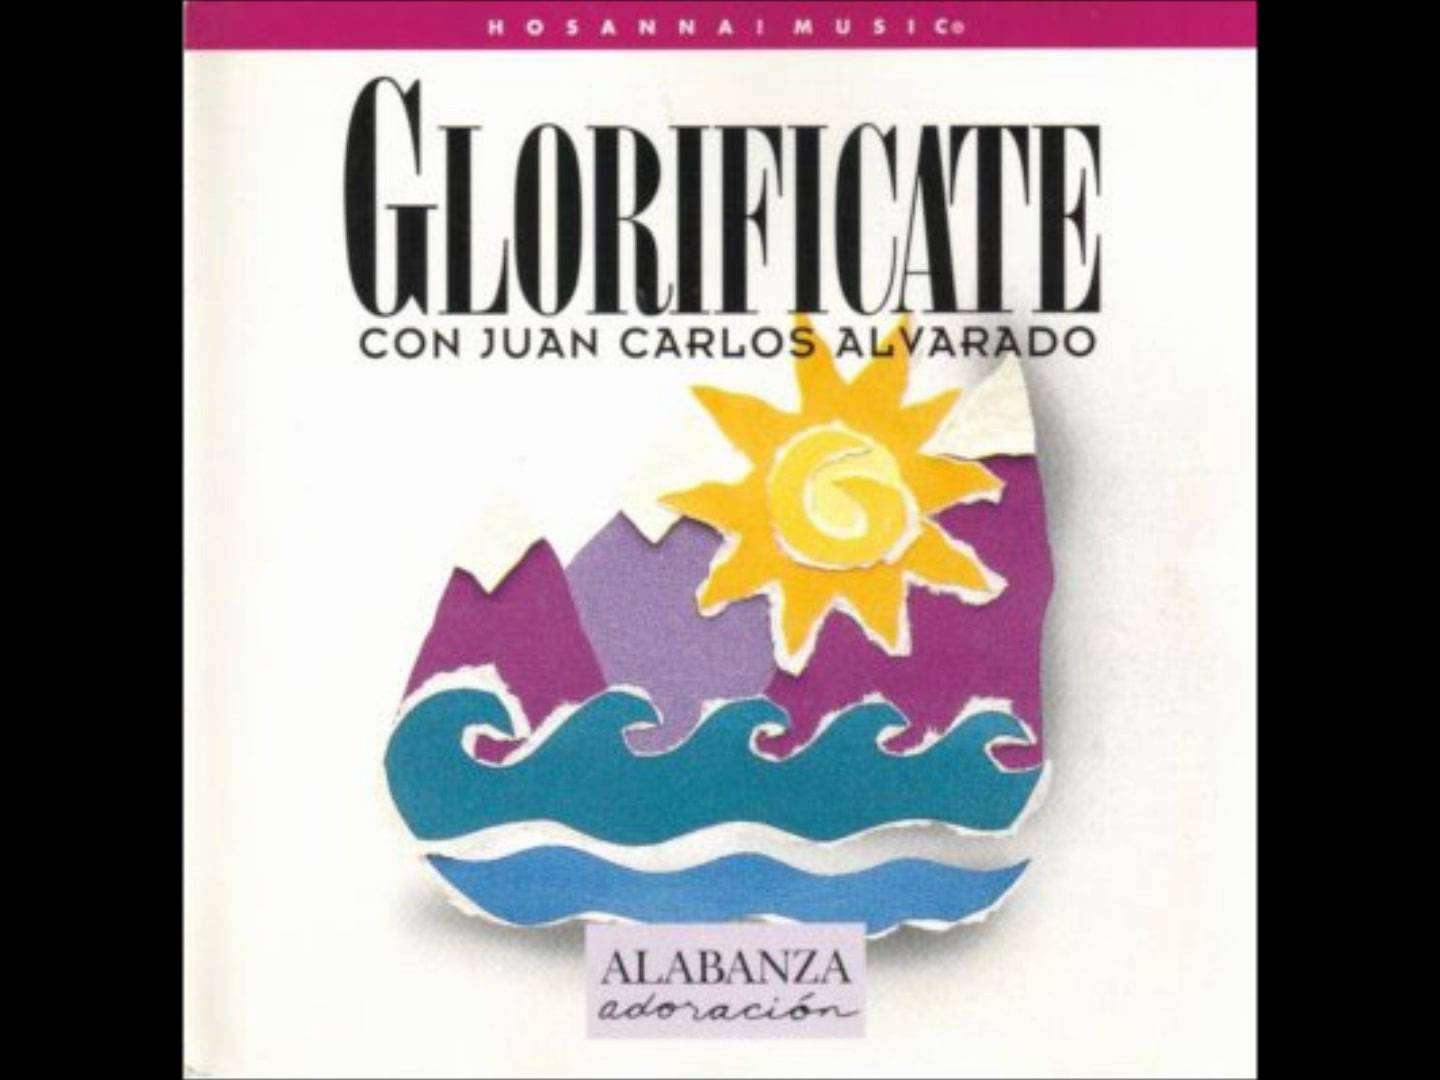 Juan Carlos Alvarado – Hossana Music – Todo – All things